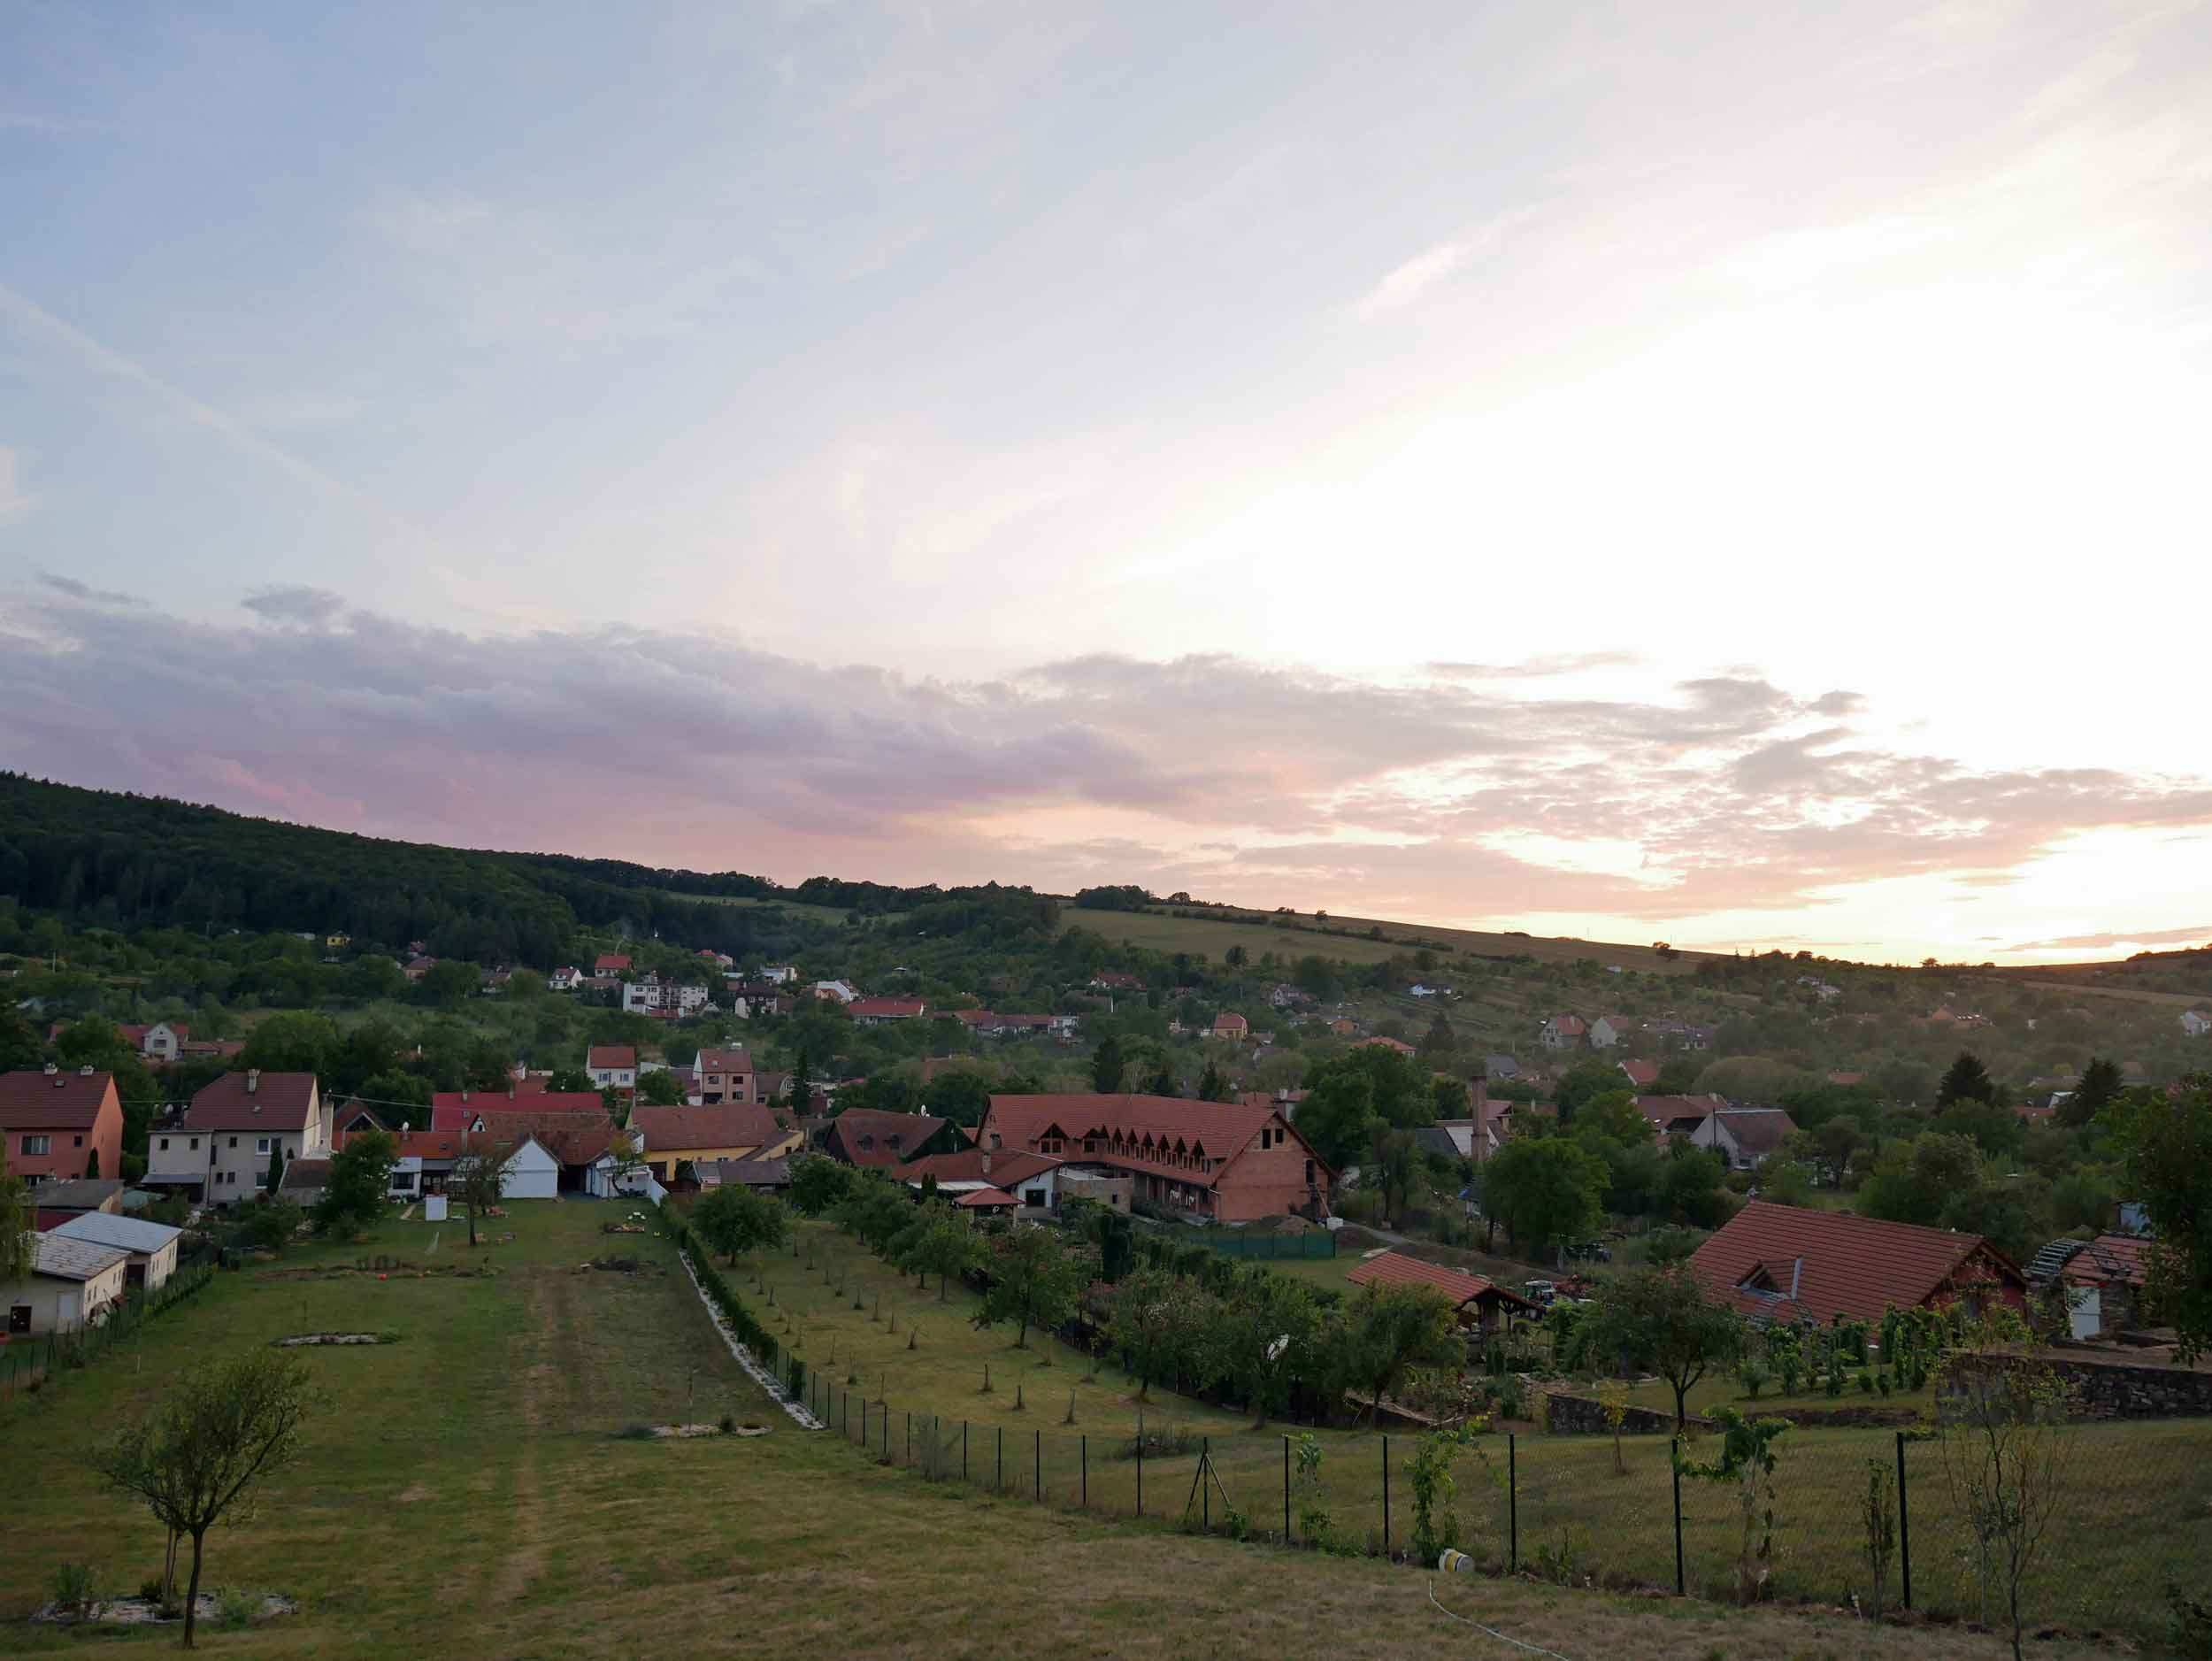 Sunset view from our cabin atop the rolling hills outside of Radějov, Czech Republic (Sept 5).